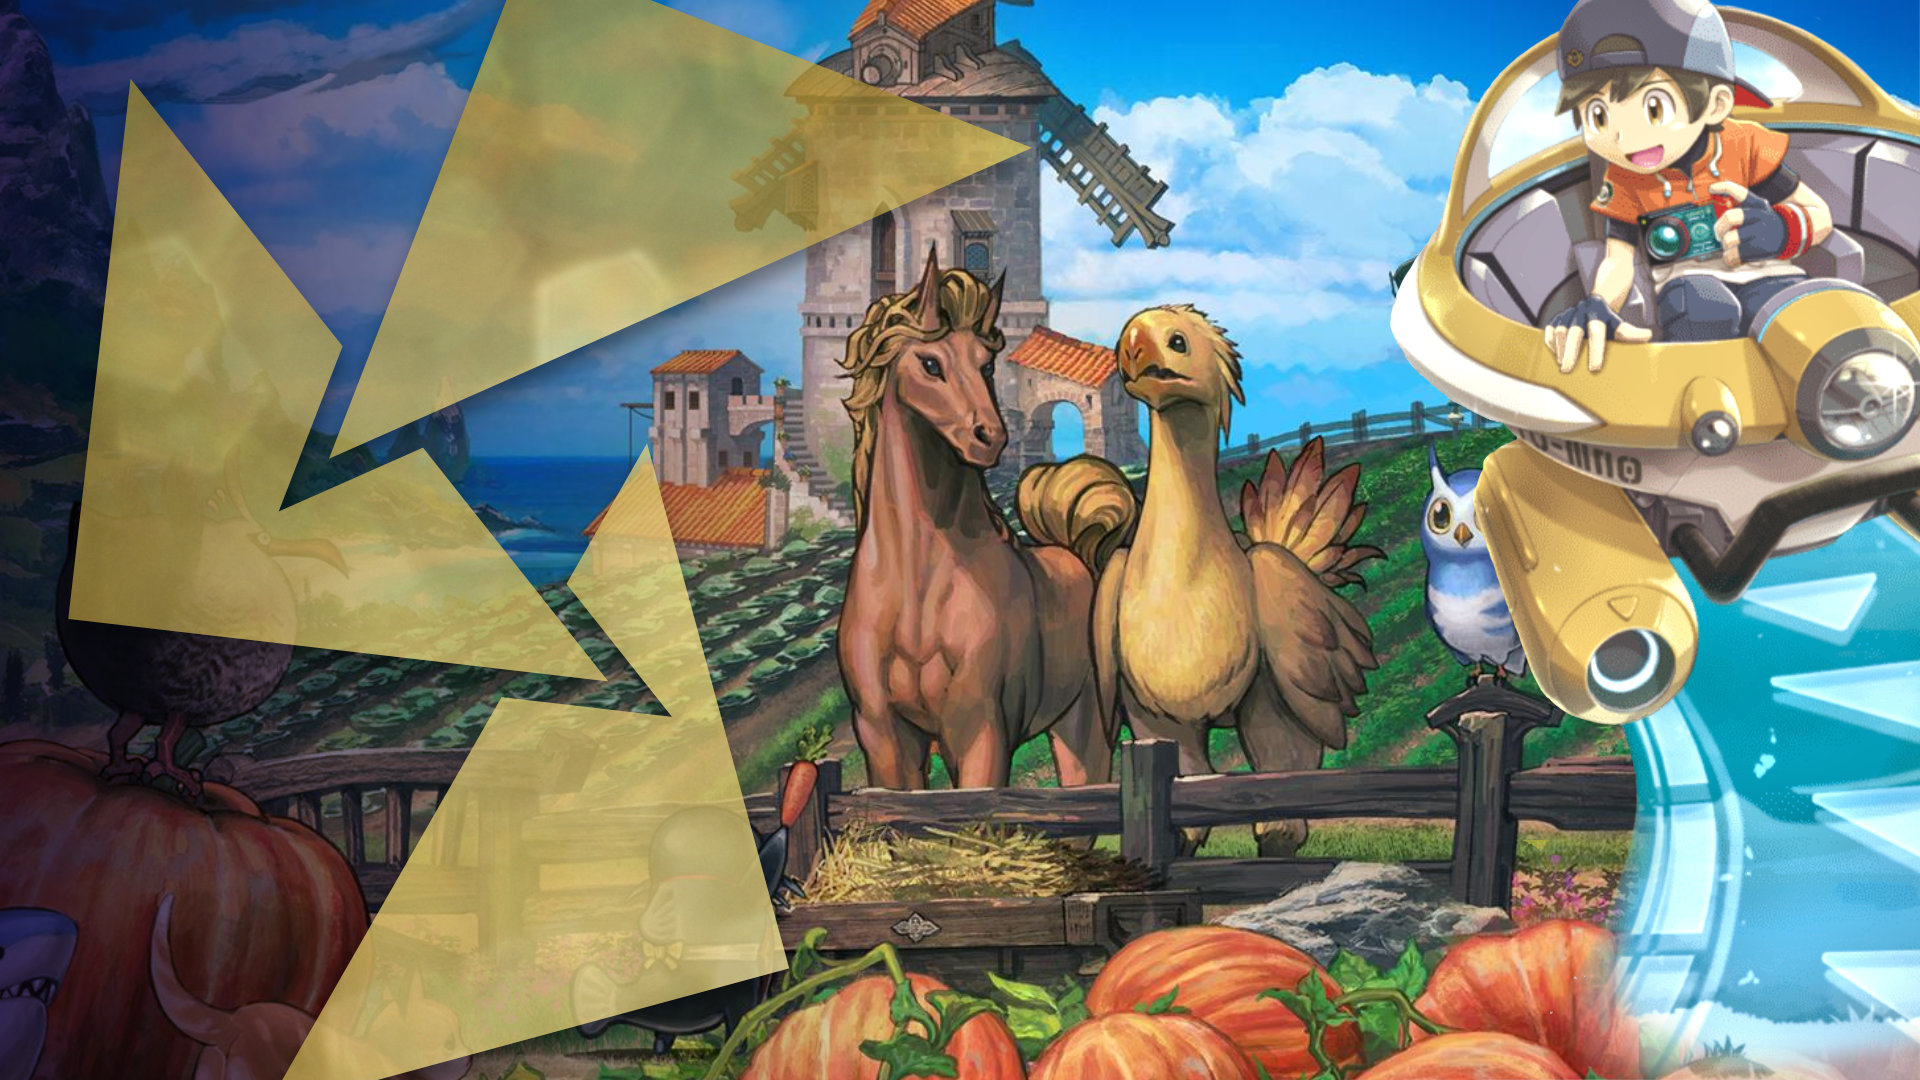 Displays a horse and a chocobo from Final Fantasy in a corral, there is a windmill in the background, pumpkins in the foreground, and the main male character from New Pokemon Snap rides by in his NEO-ONE hoverpod vehicle.